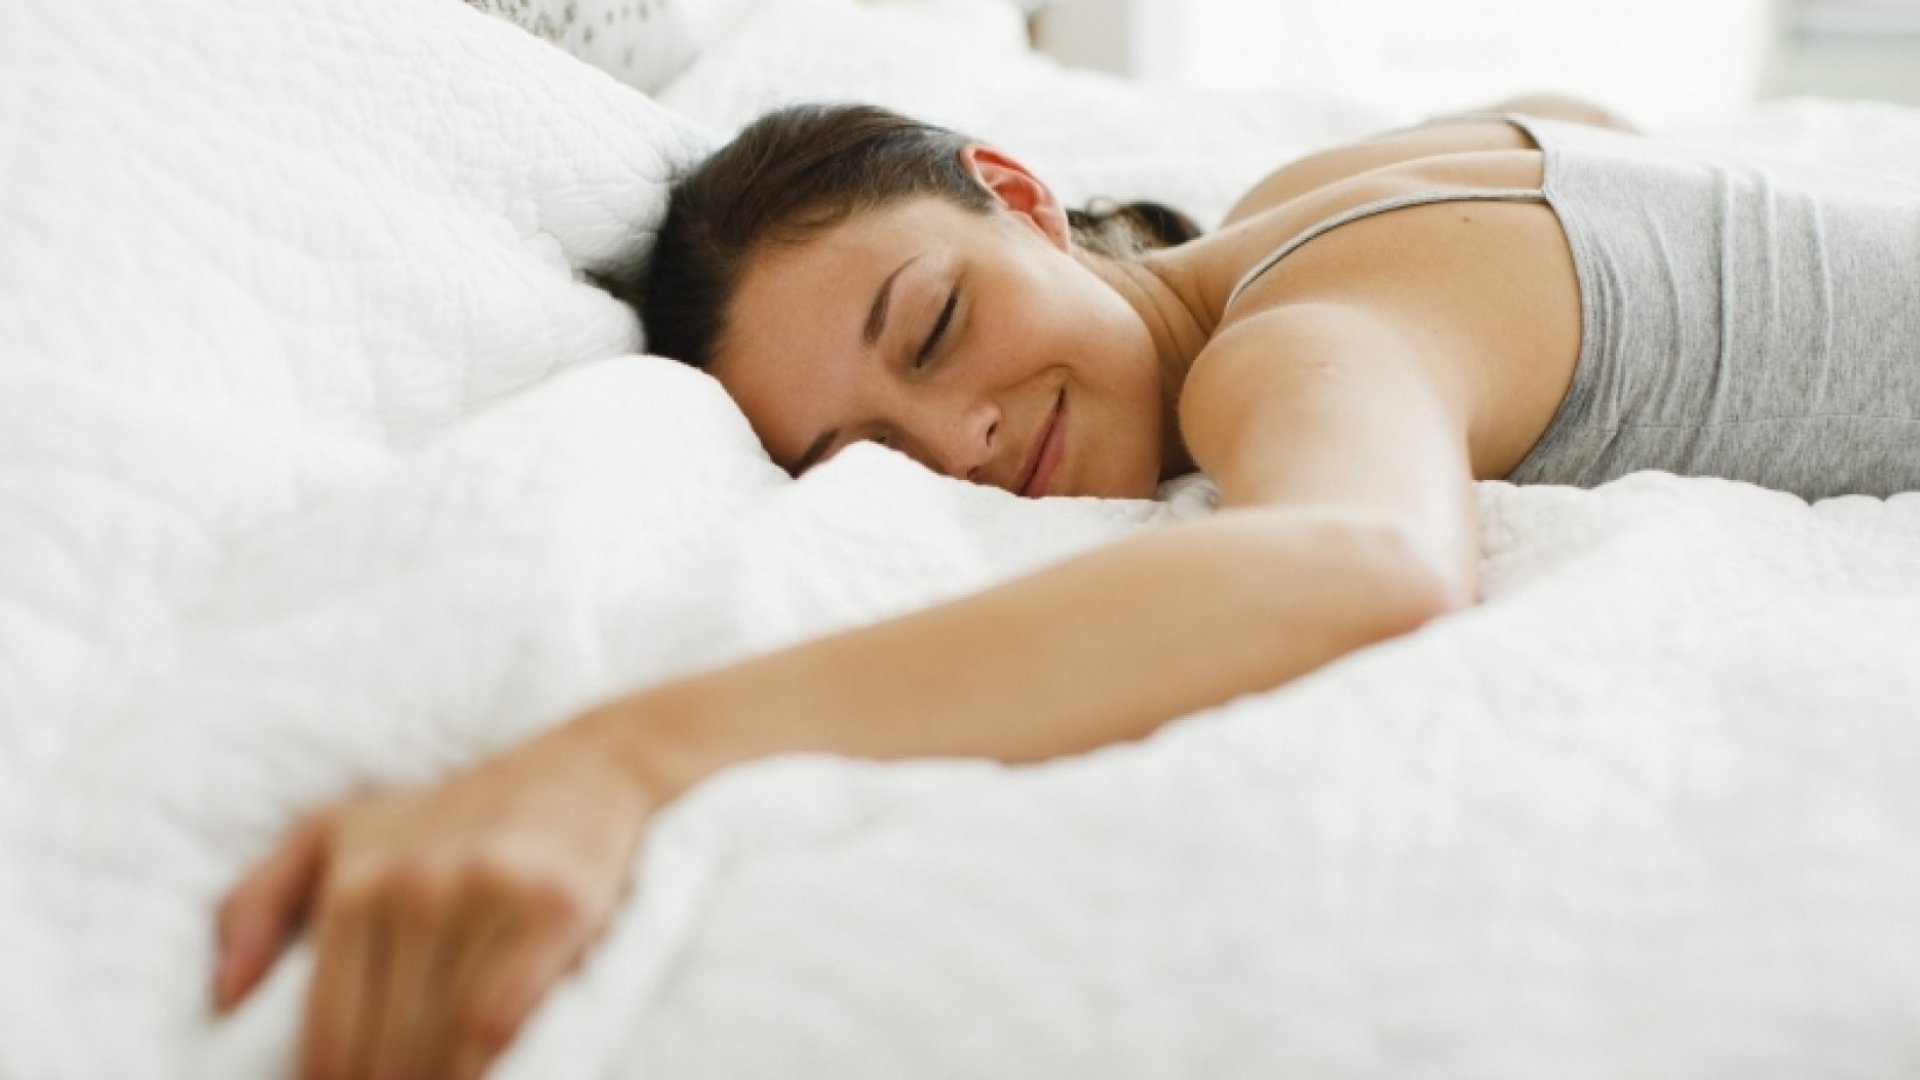 7 Guaranteed Ways to Get Out of Bed 30 Minutes Earlier Every Day